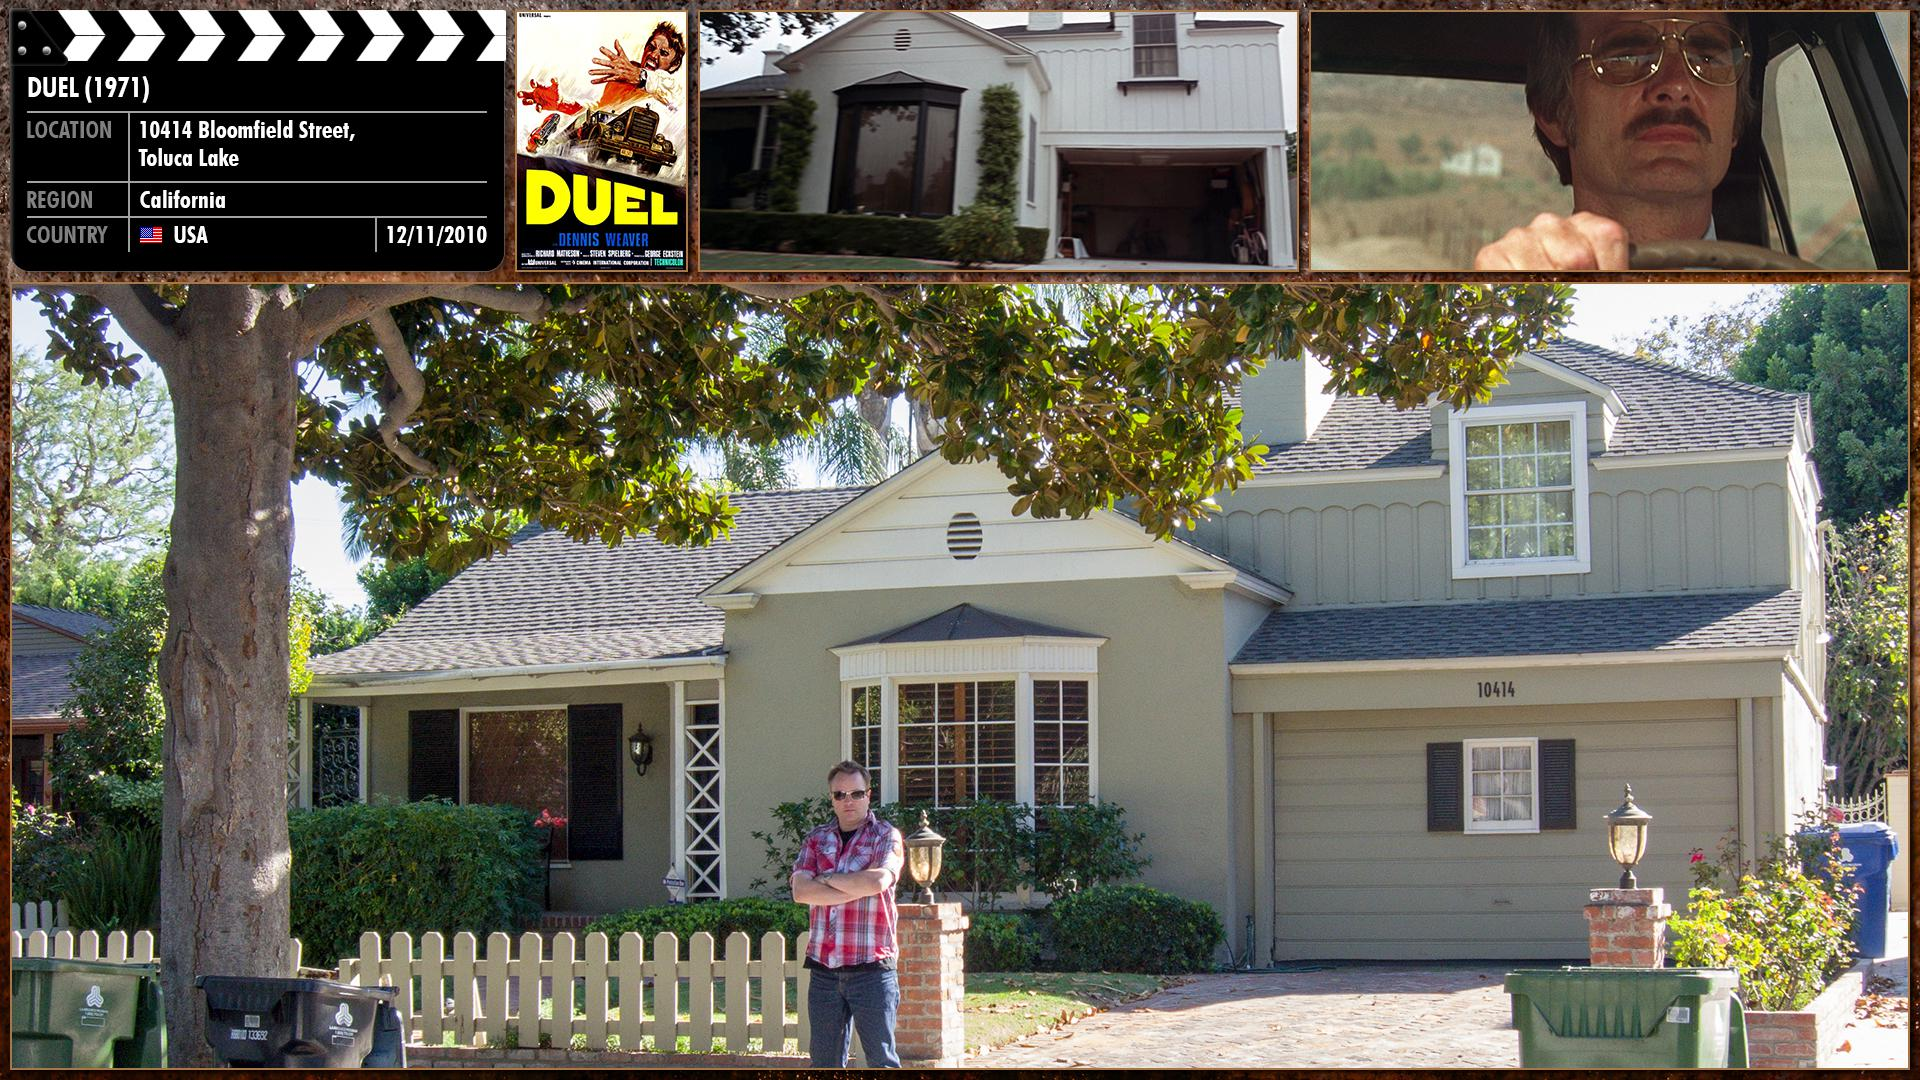 Filming location photo for Duel (1971) 3 of 5